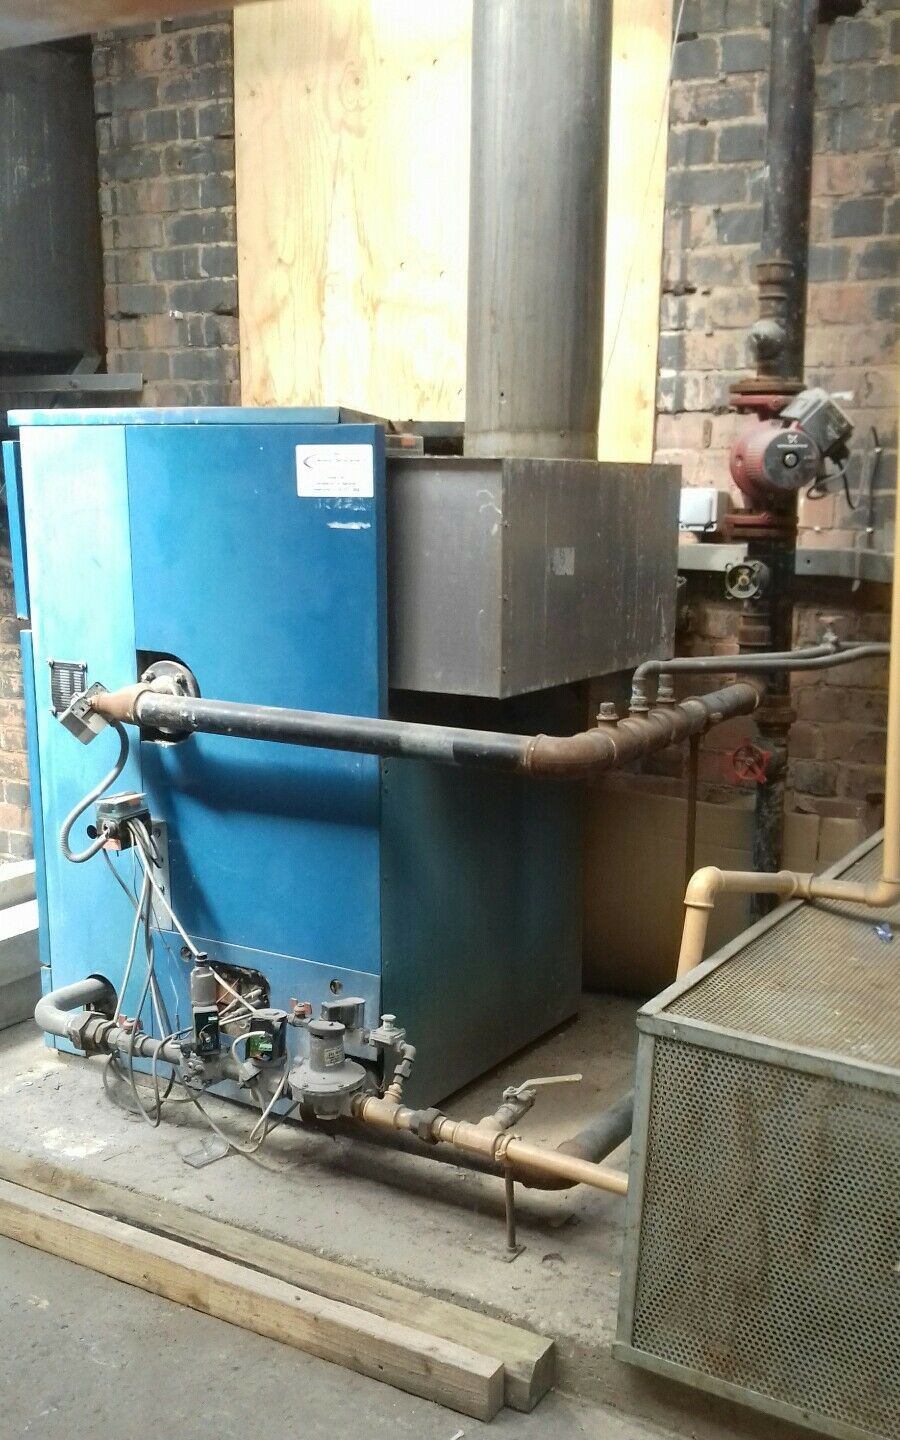 COMMERCIAL HEATING SYSTEM boiler complete - £999.99 | PicClick UK